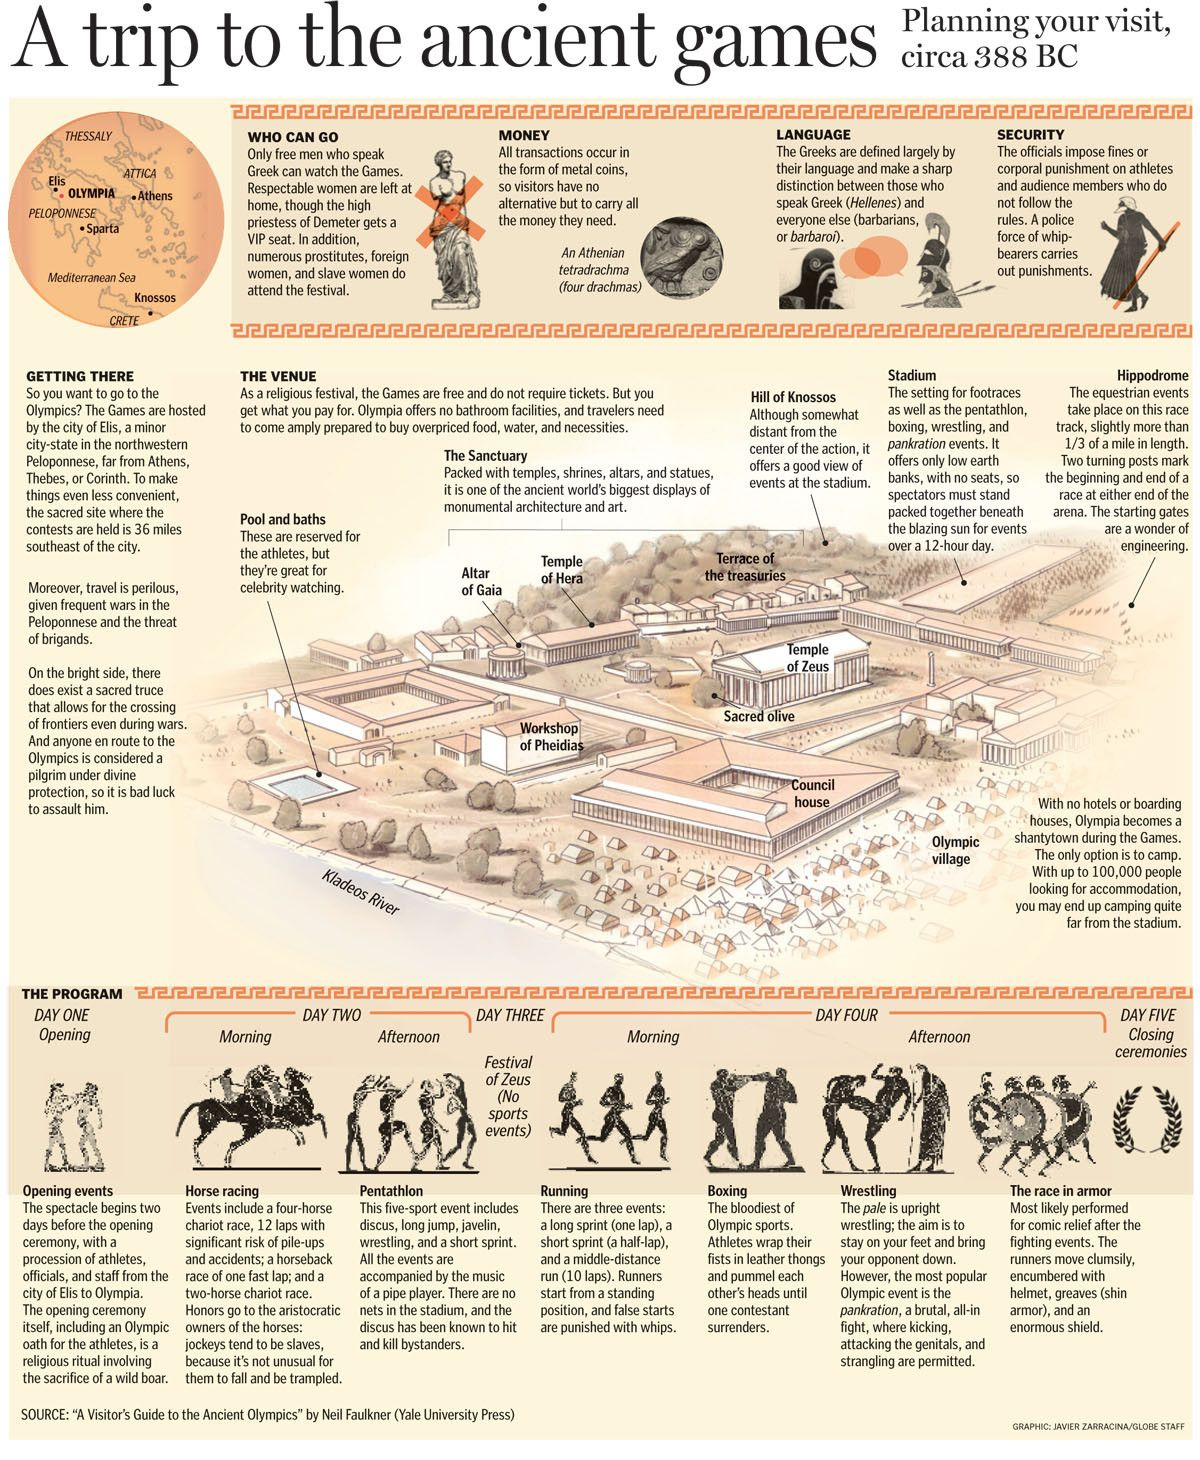 Guide to the ancient olympics | History | Ancient olympics